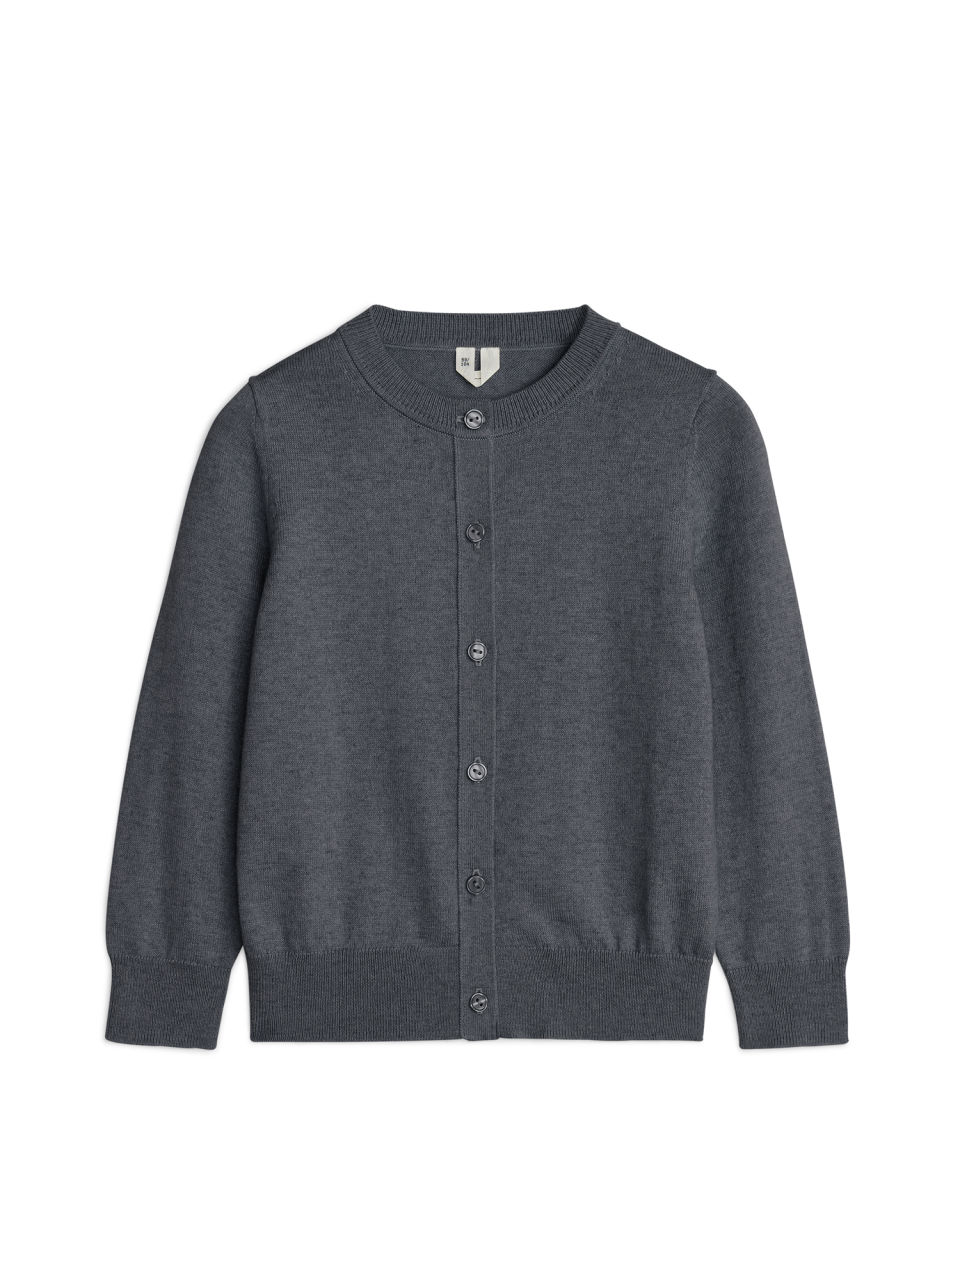 Cotton Cashmere Cardigan - Dark Grey Melange - Knitwear - ARKET